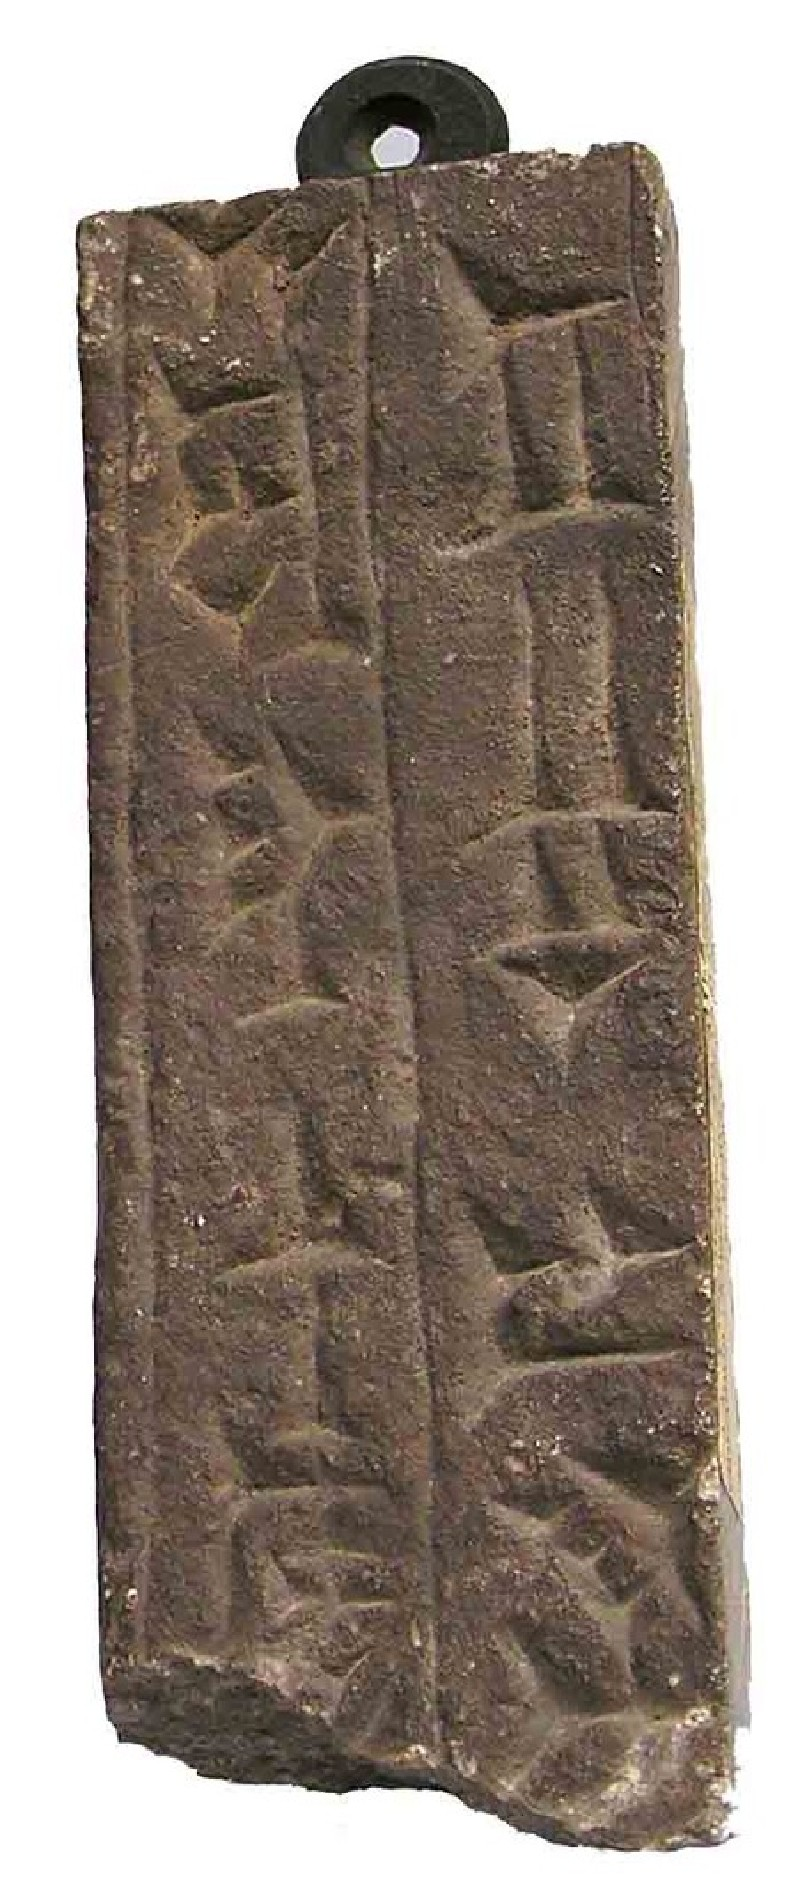 Alabaster slab with incised cuneiform inscription